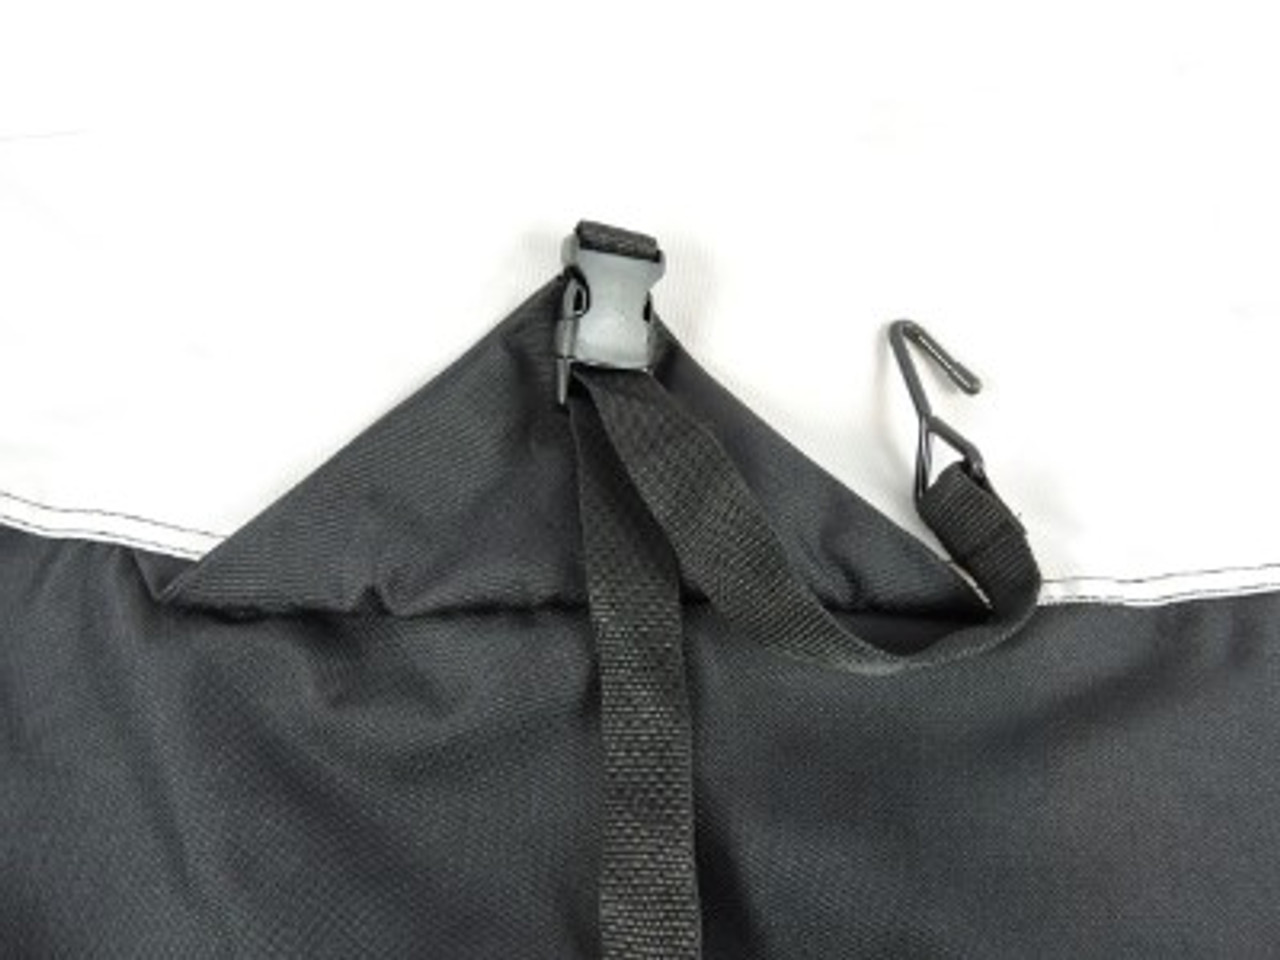 Nanook extra reinforced strap tabs for secure trailering